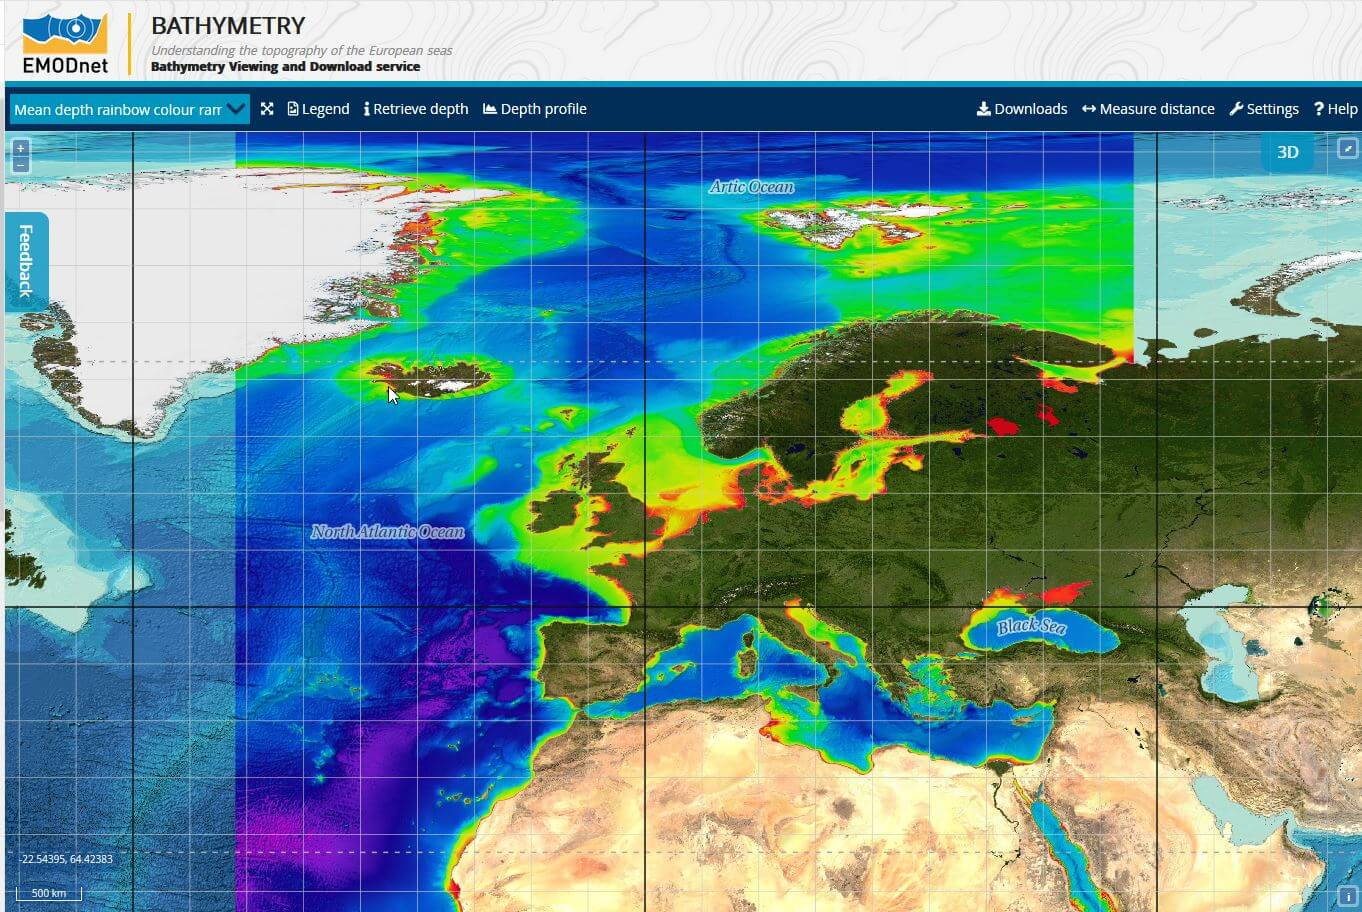 bathymetry viewing and download service interface